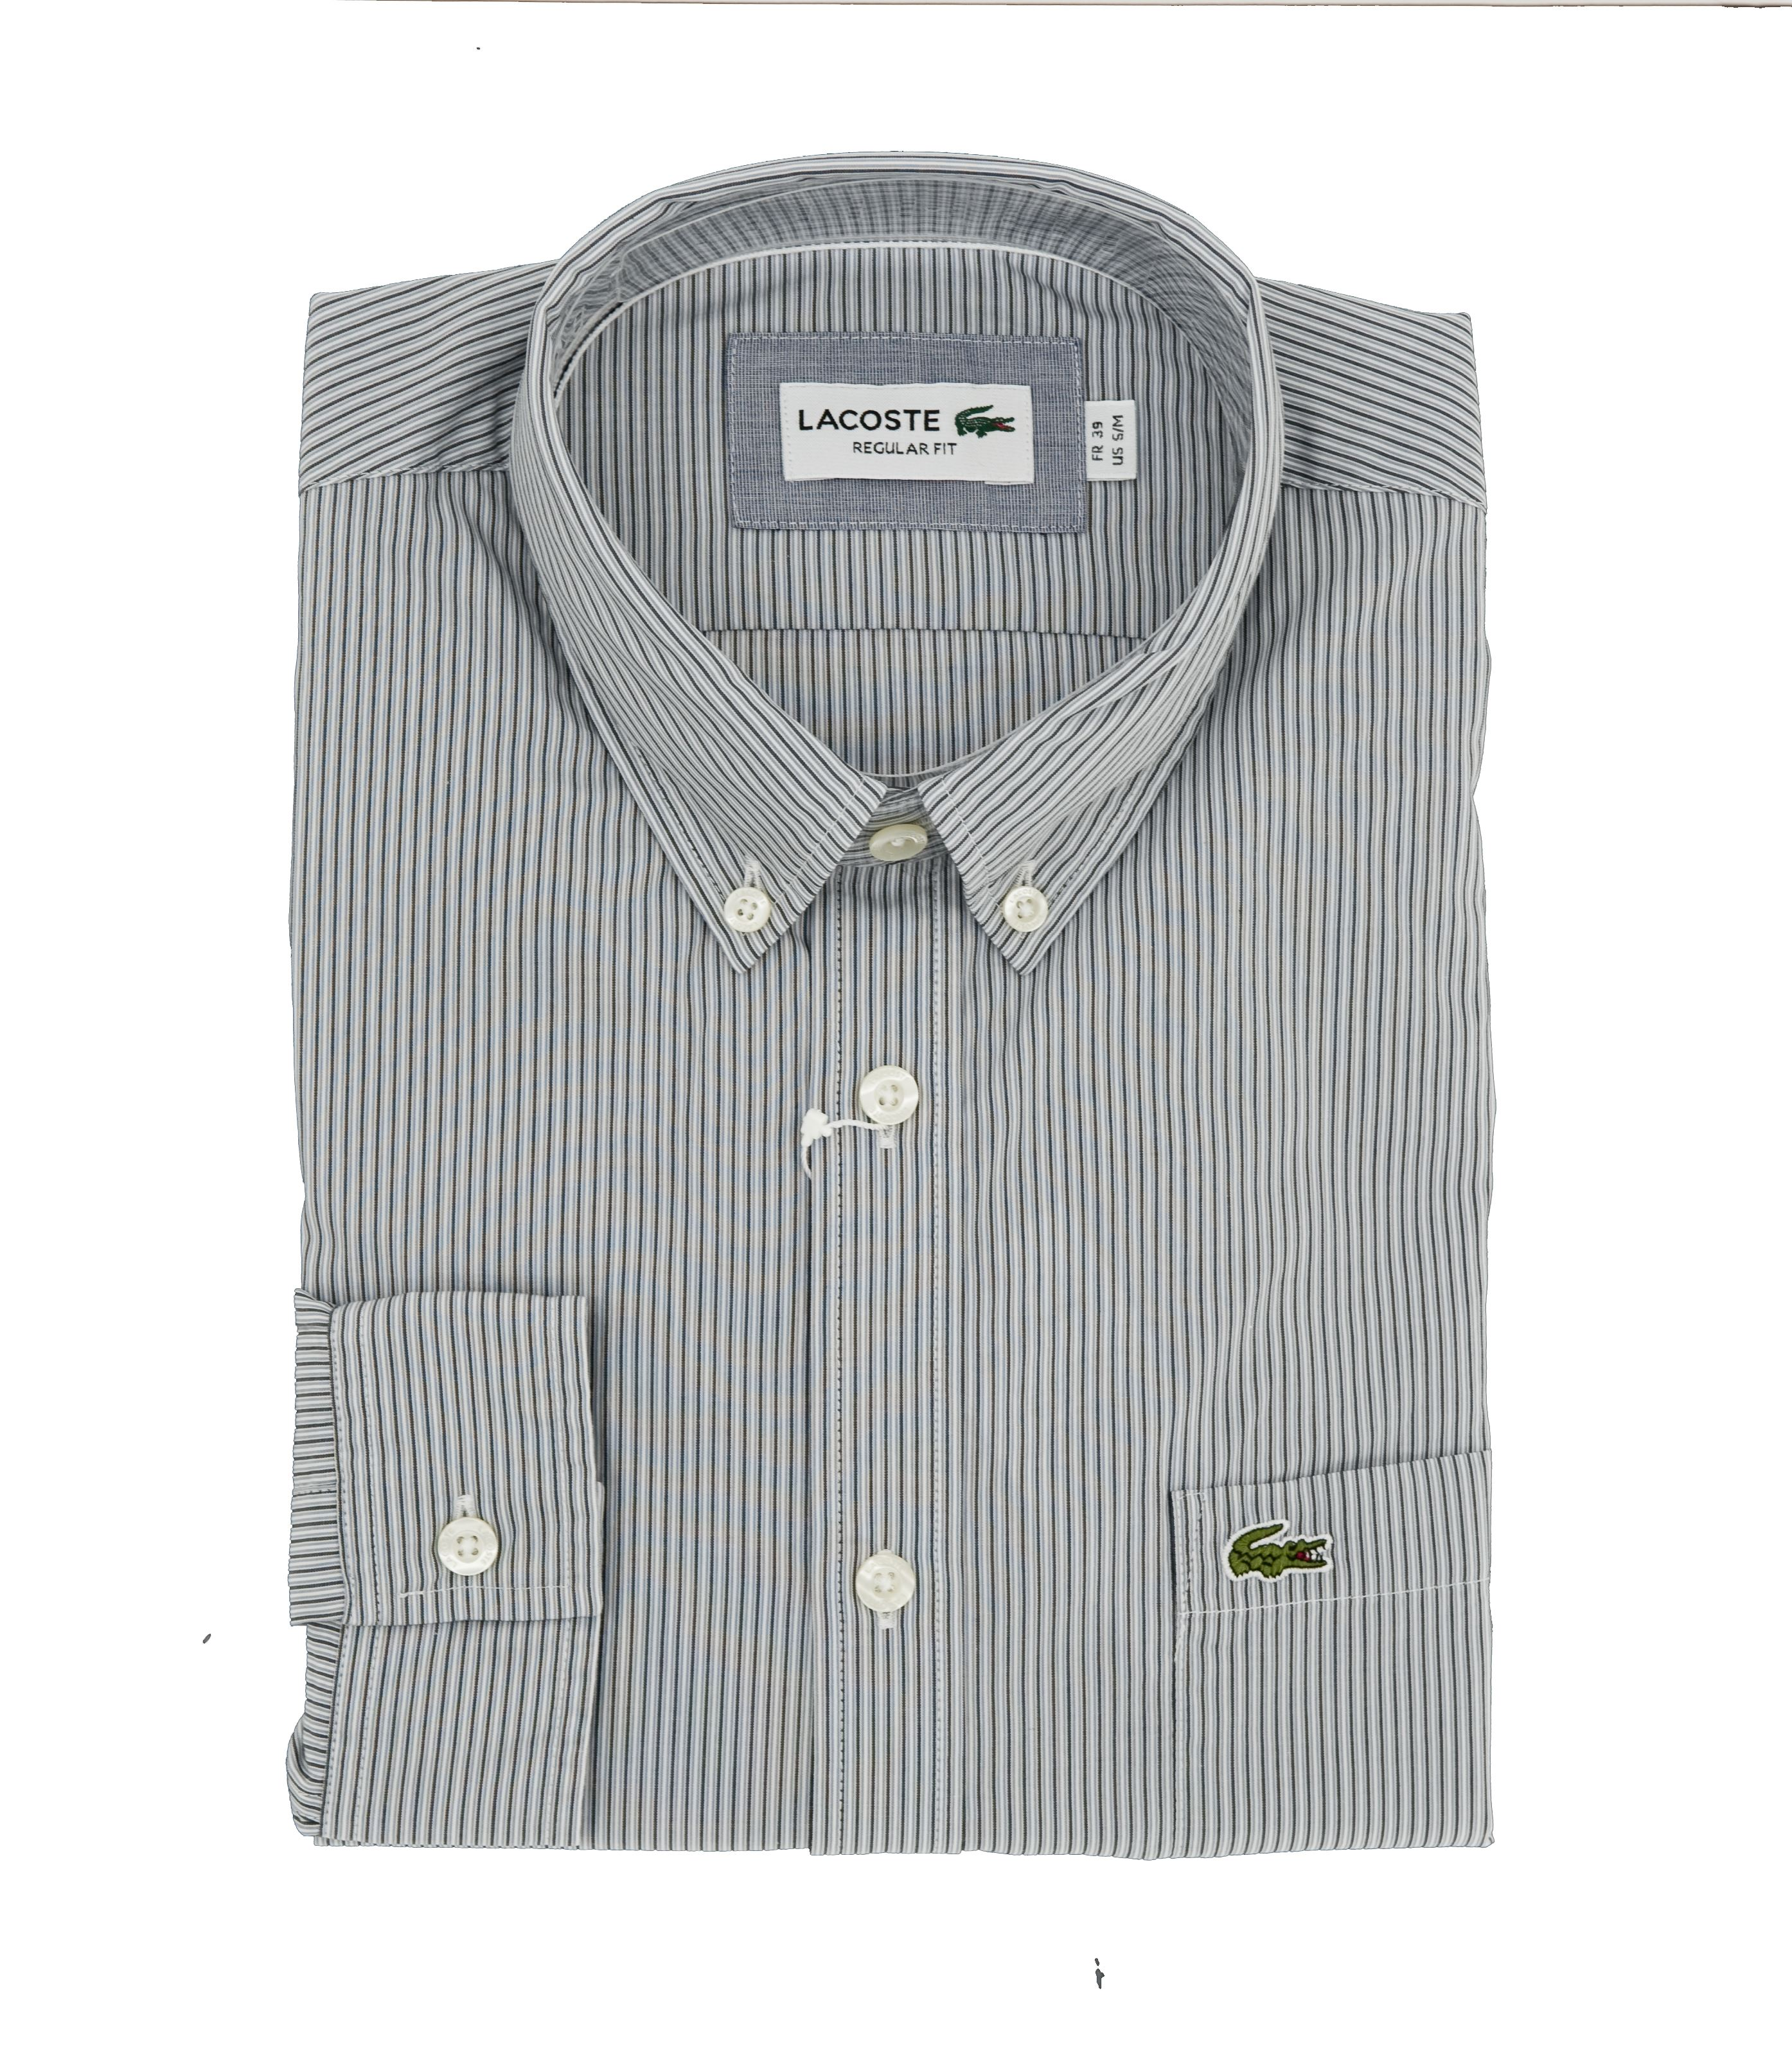 1e33116faf23c1 Lacoste long sleeves stripes shirt ch 9561 graphite moulin -blanc Regular  Fit - Floccari Store